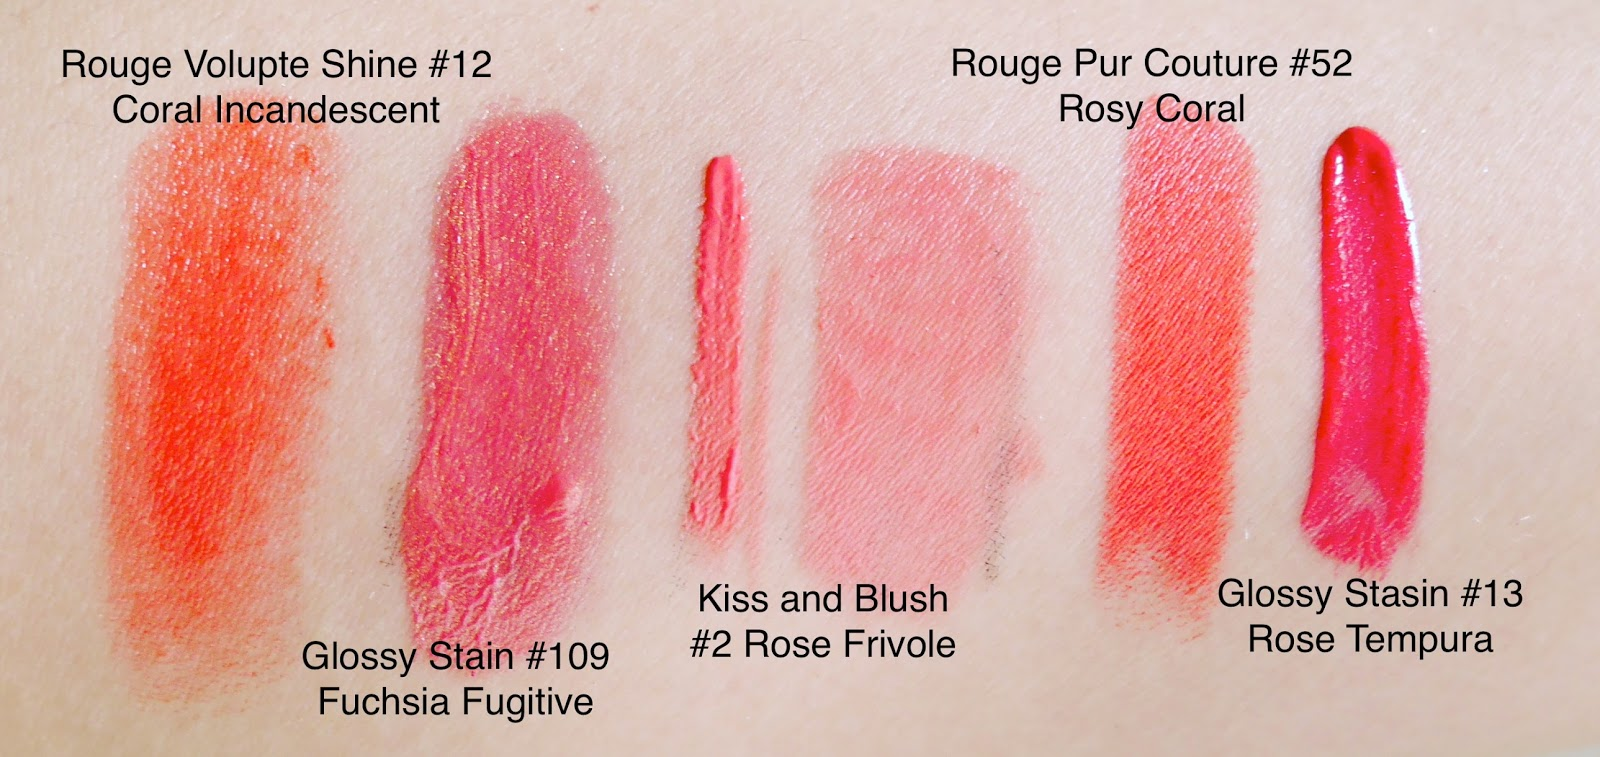 ysl glossy stin 13 109 rouge volumpte shine 12 kiss and blush 2 rouge pur couture 52 swatch